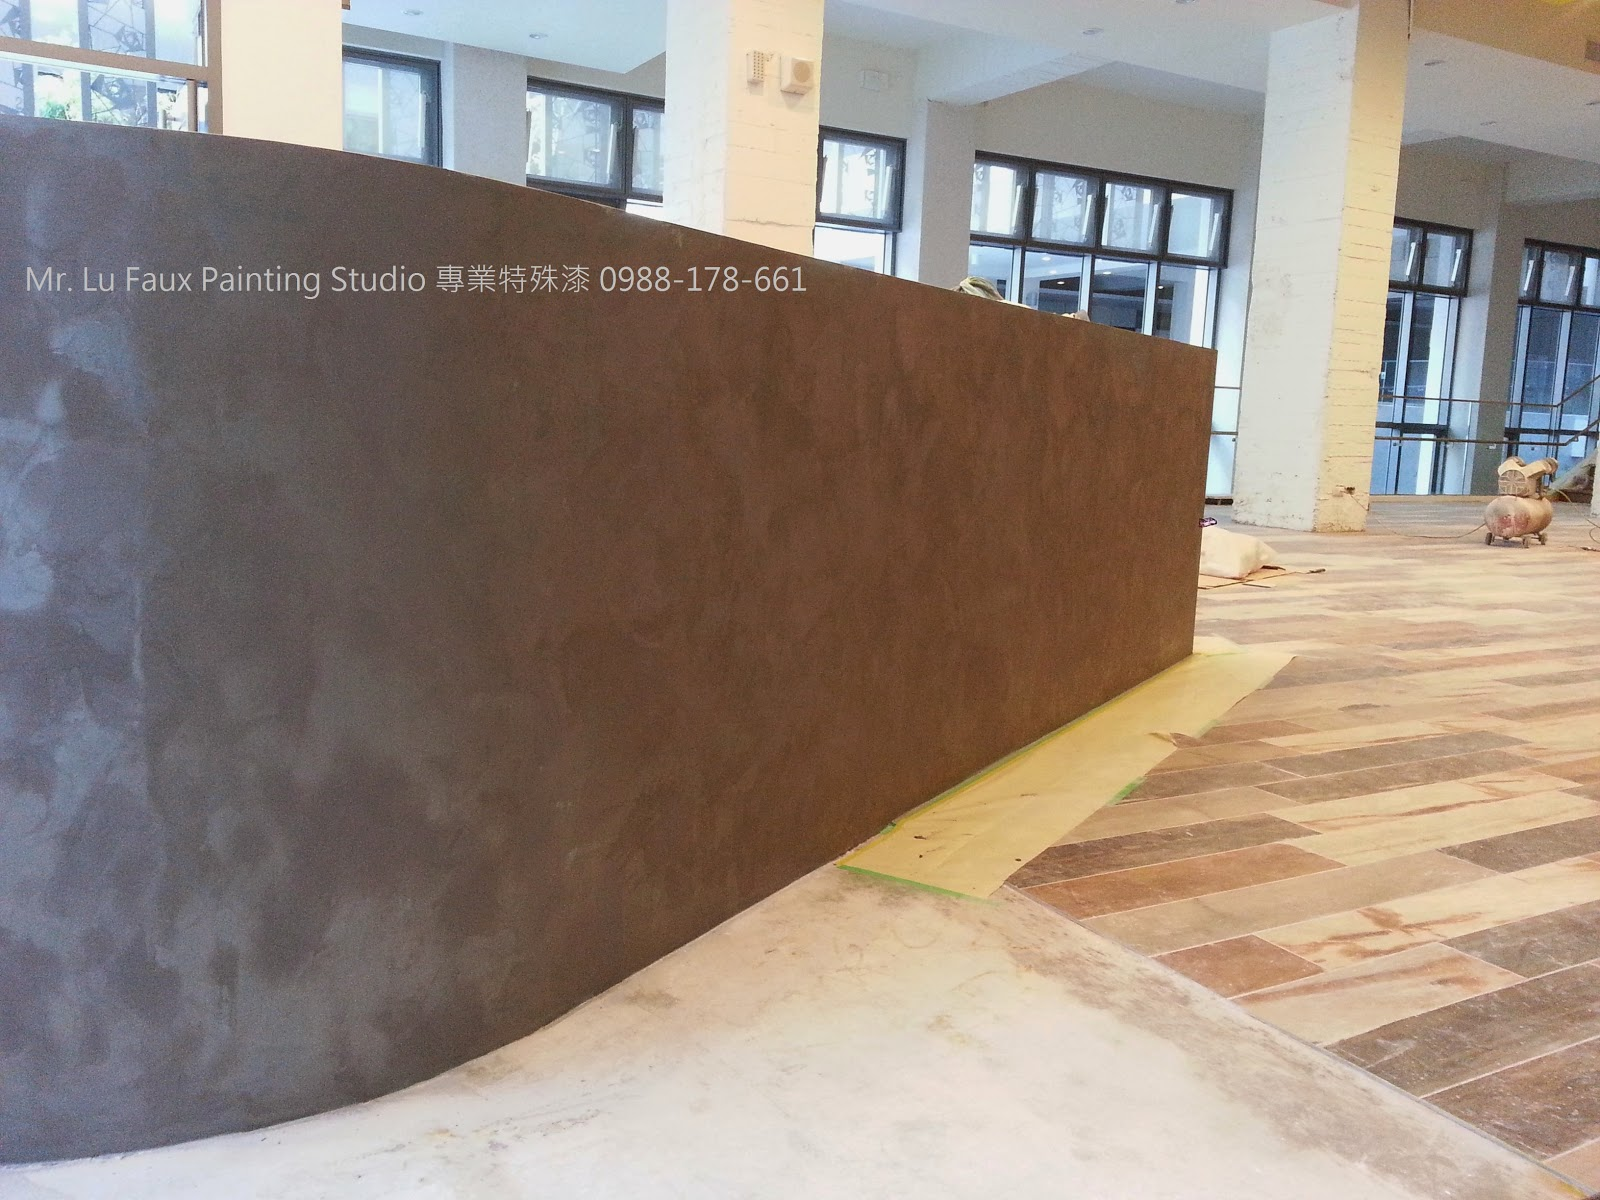 Wall Cladding Stone Modern Architecture Texture Seamless 07845 furthermore Nomad also Stone And Spear furthermore Carlo Scarpa Olivetti Showroom Venice besides Pergamum. on modern stone s